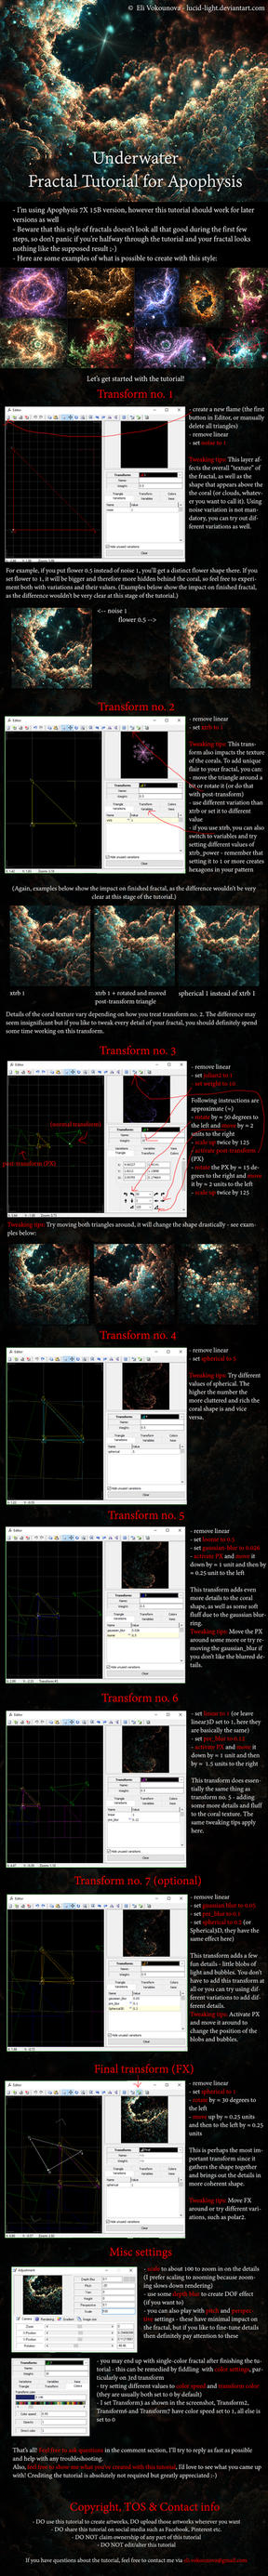 Underwater - Apophysis Fractal Tutorial by lucid-light